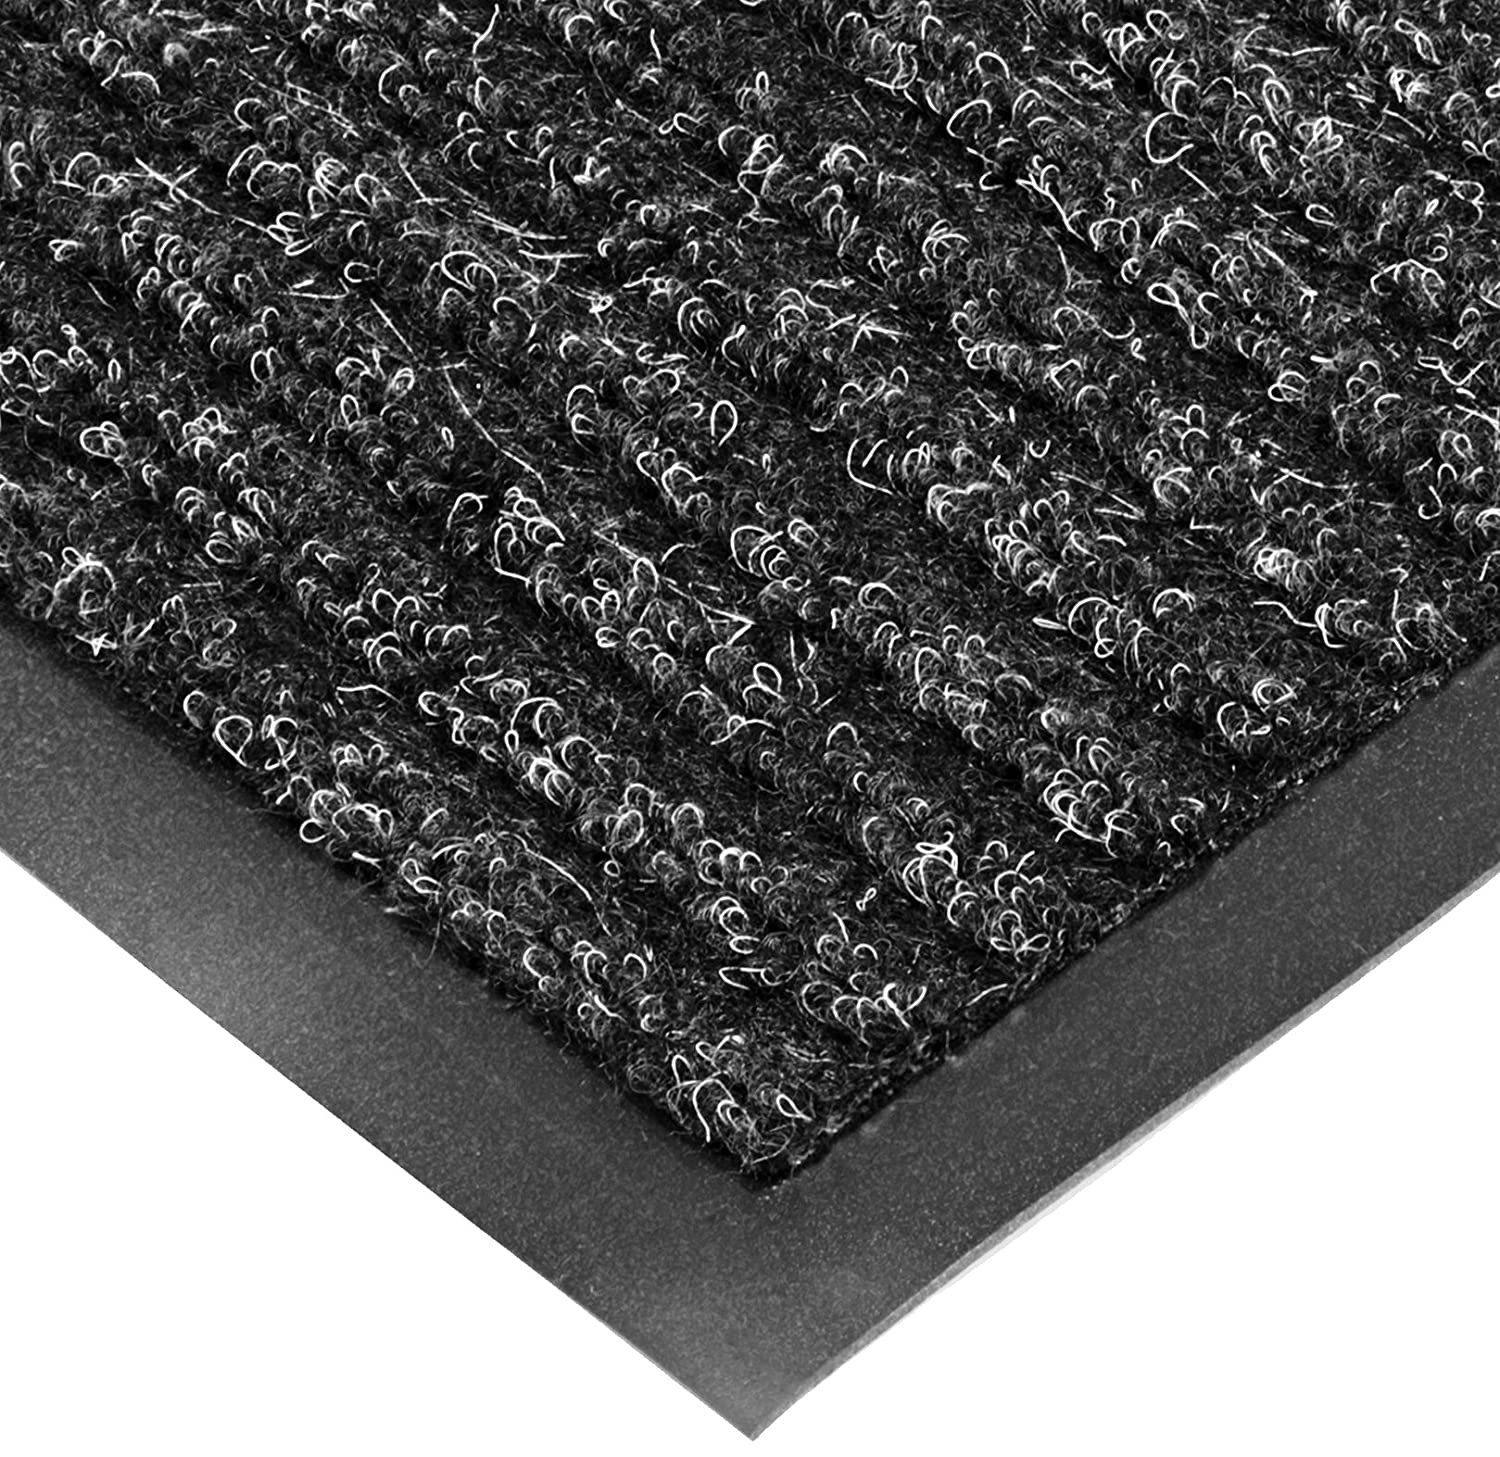 NoTrax T39 Bristol Ridge Scraper Carpet Mat, for Wet and Dry Areas, 3' Width x 6' Length x 3/8 Thickness, Midnight Superior Manufacturing Group Inc T39S0036CH